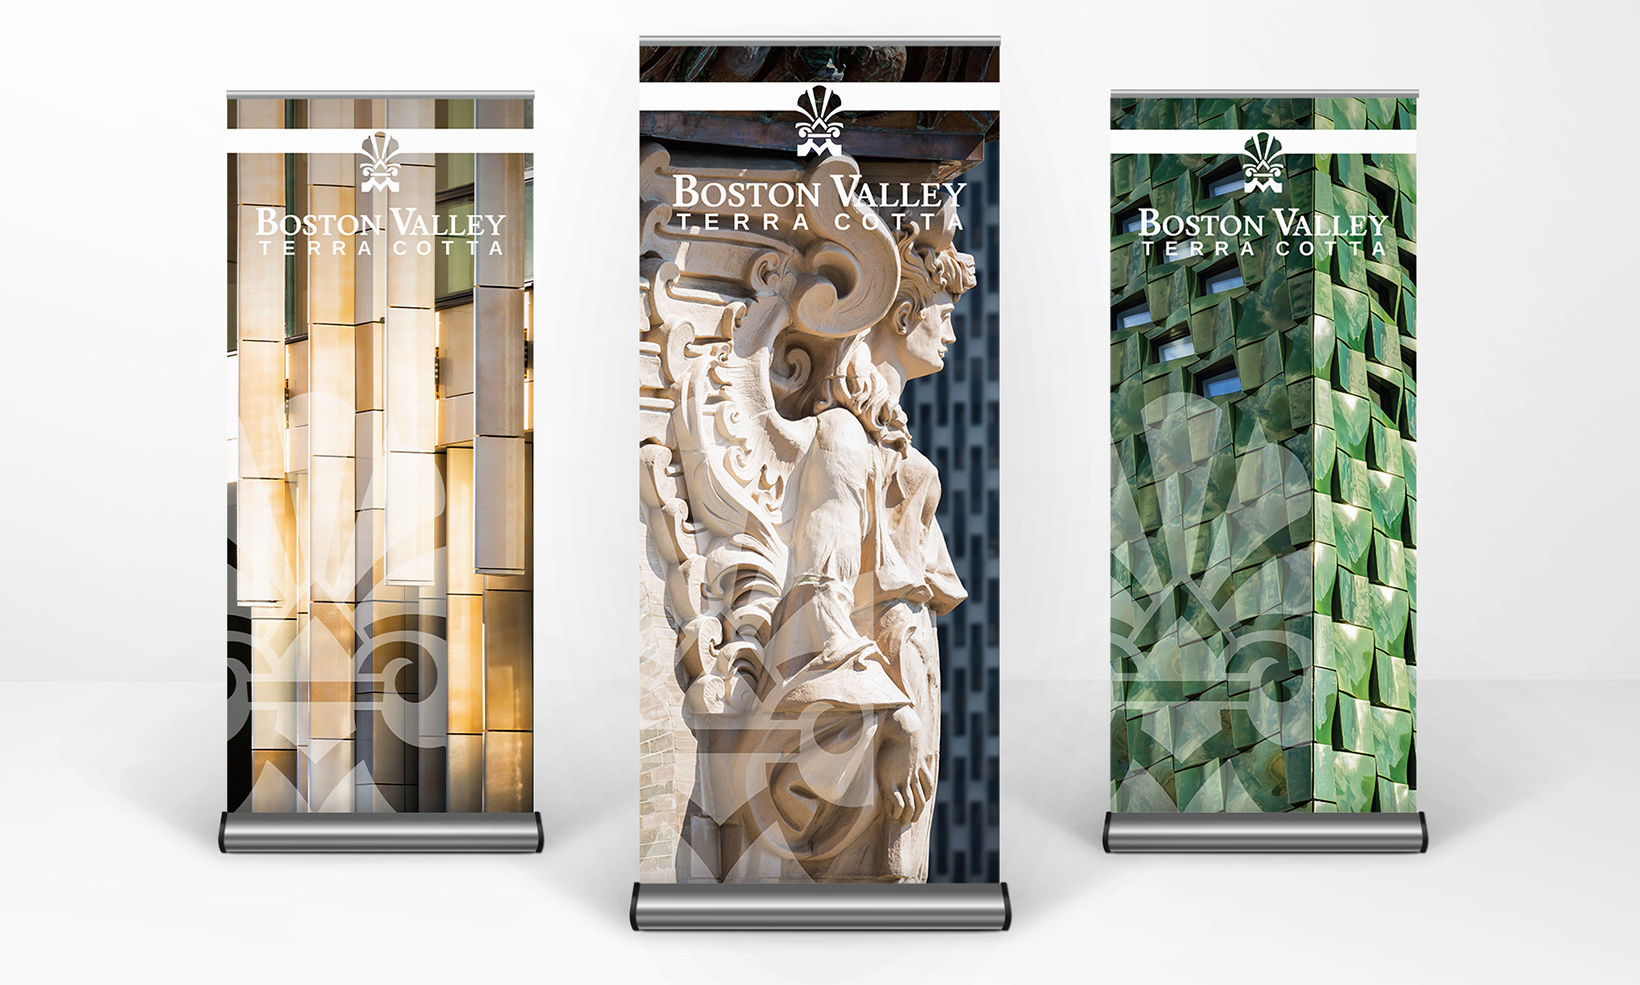 Retractable banners for use at trade shows display some of Boston Valley Terra Cotta's recent projects